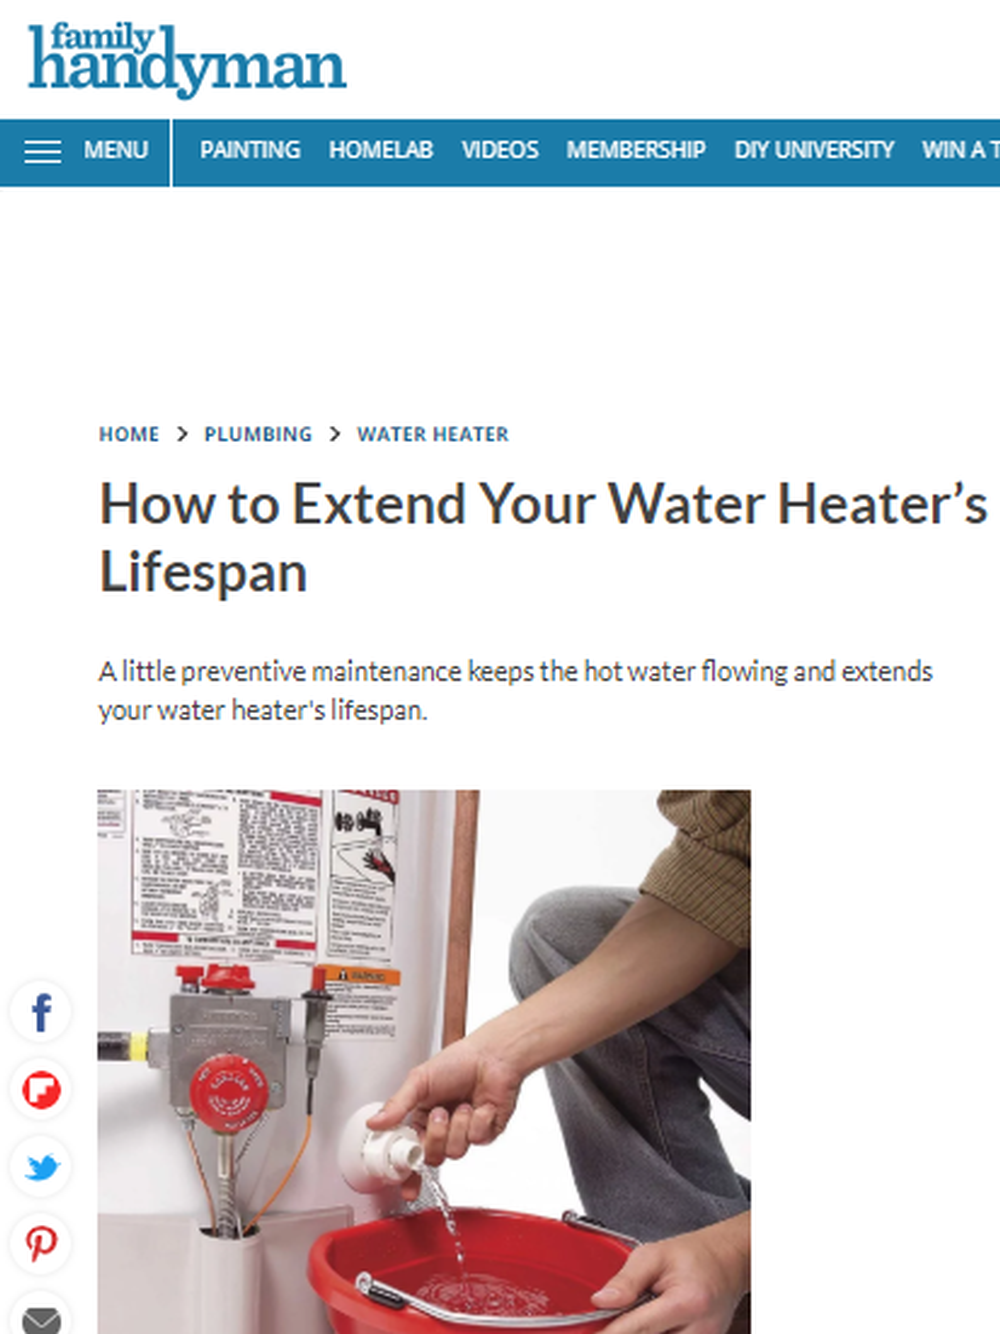 How to Extend Your Water Heater Lifespan.png